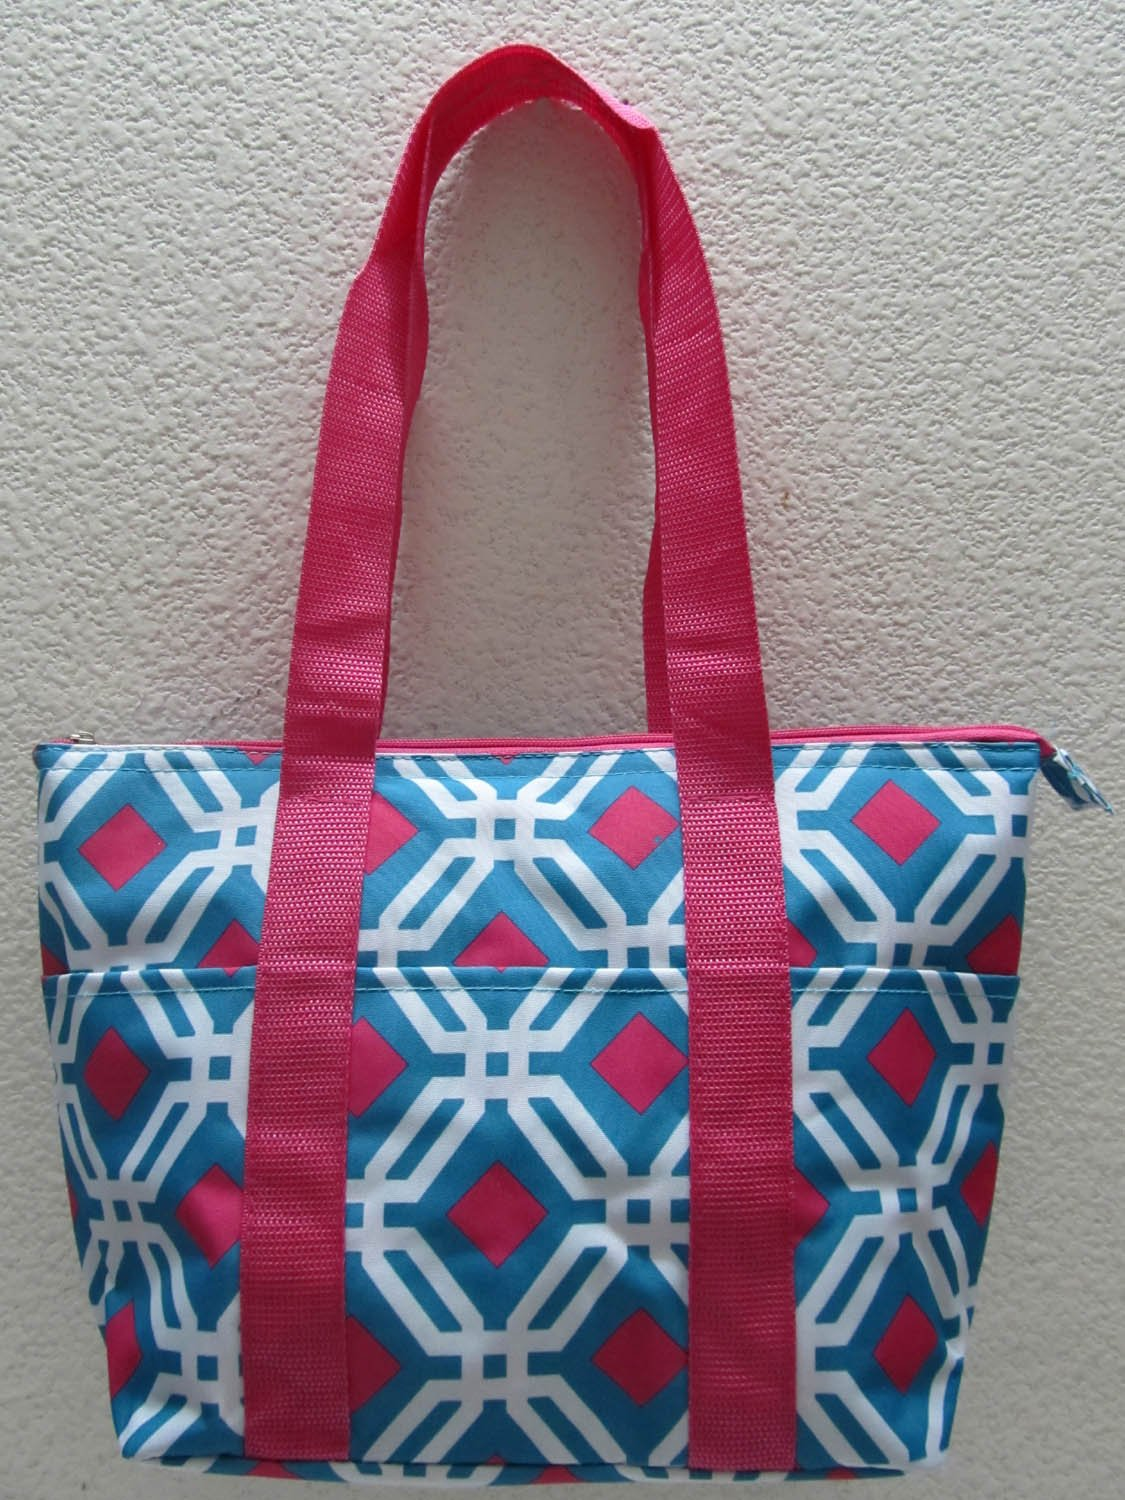 Good Bag Insulated Lunch Bag Portable Carry Storage Lunch Tote Bag - Blue Graphic